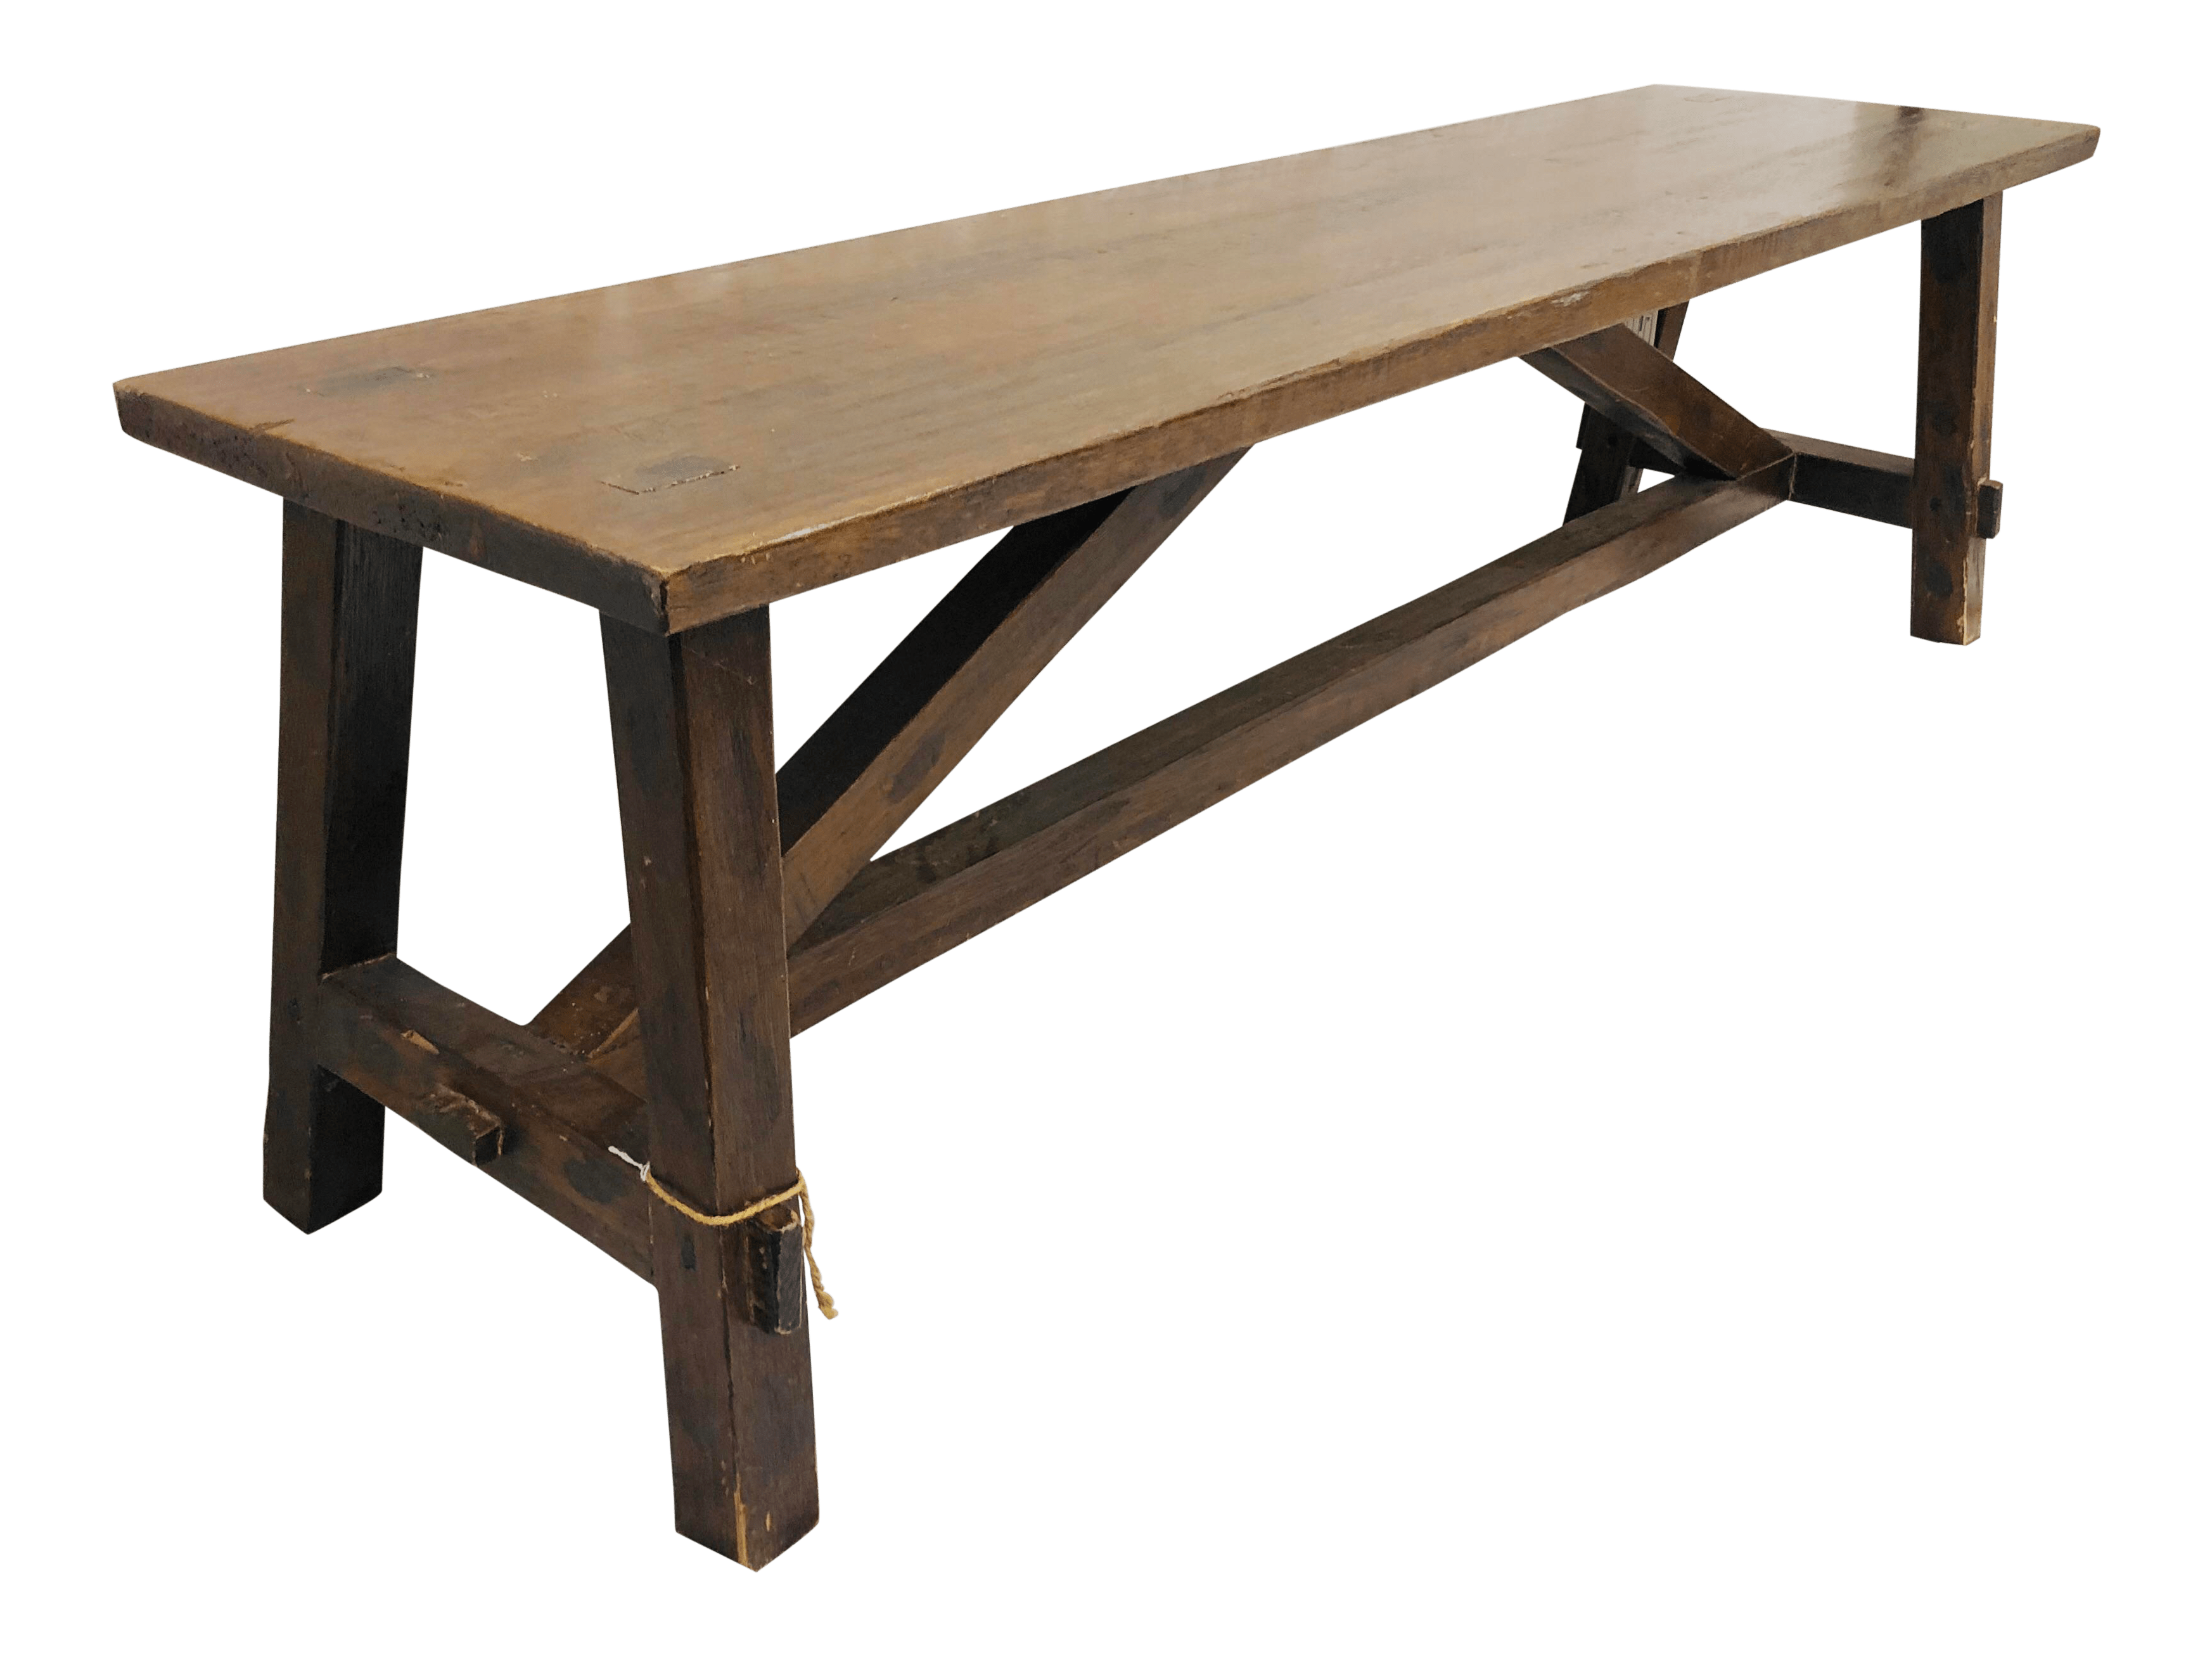 antique wooden bench table